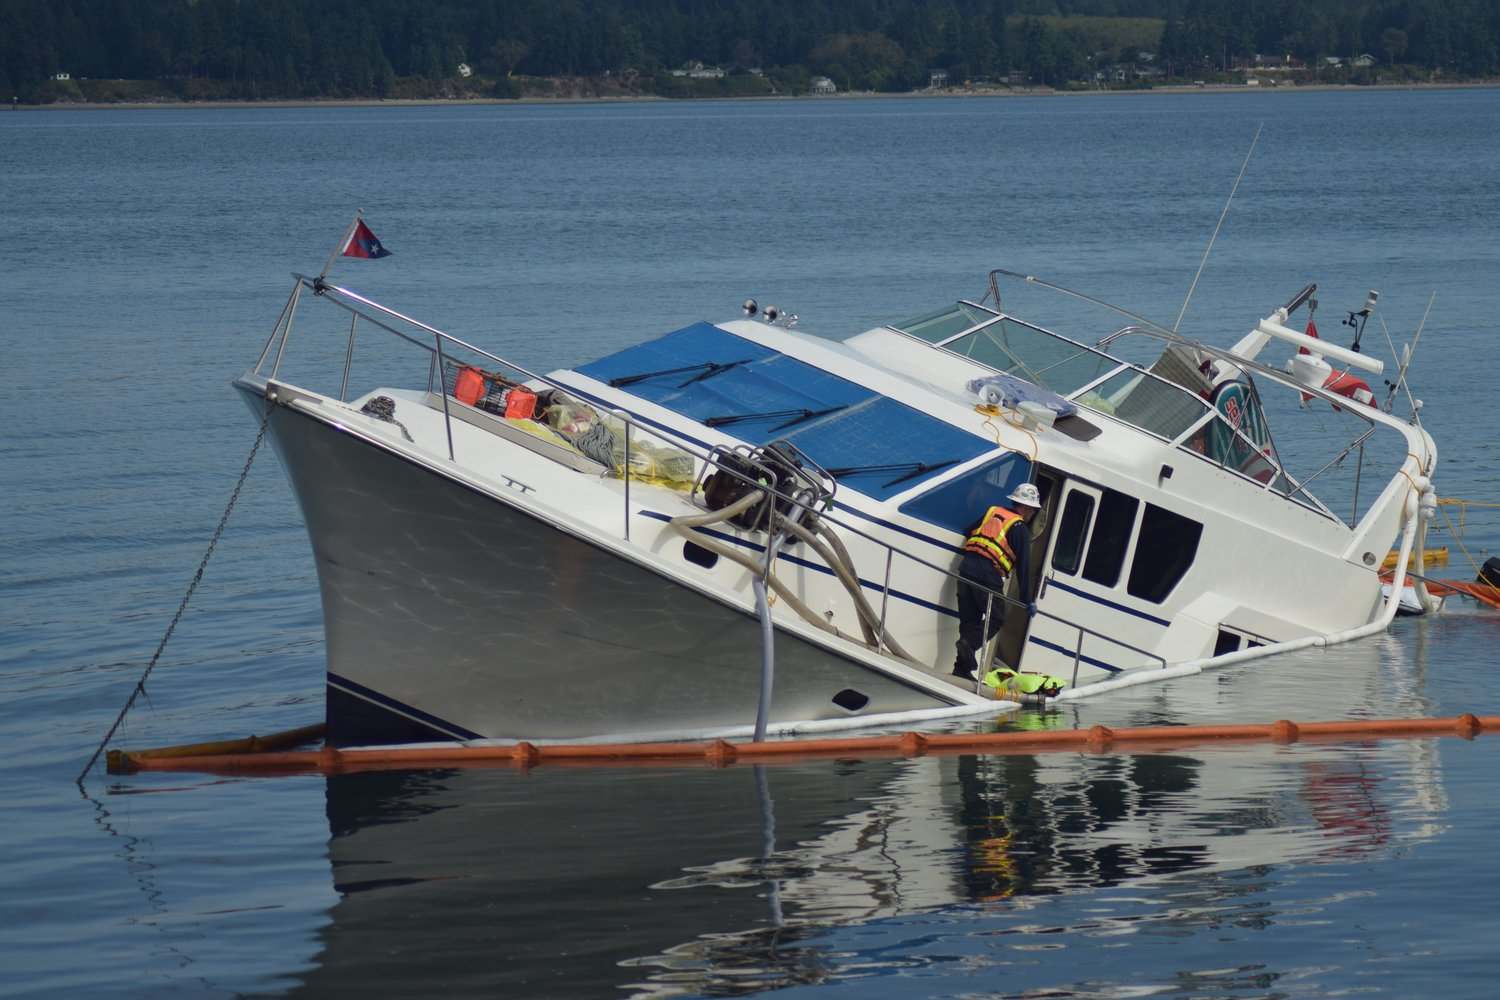 With 300 gallons of diesel in its fuel tanks, the sunken Silver Linings, a 65-foot luxury yacht, was surrounded with precautionary spill buoy to prevent any leaks from escaping beyond the recovery scene.